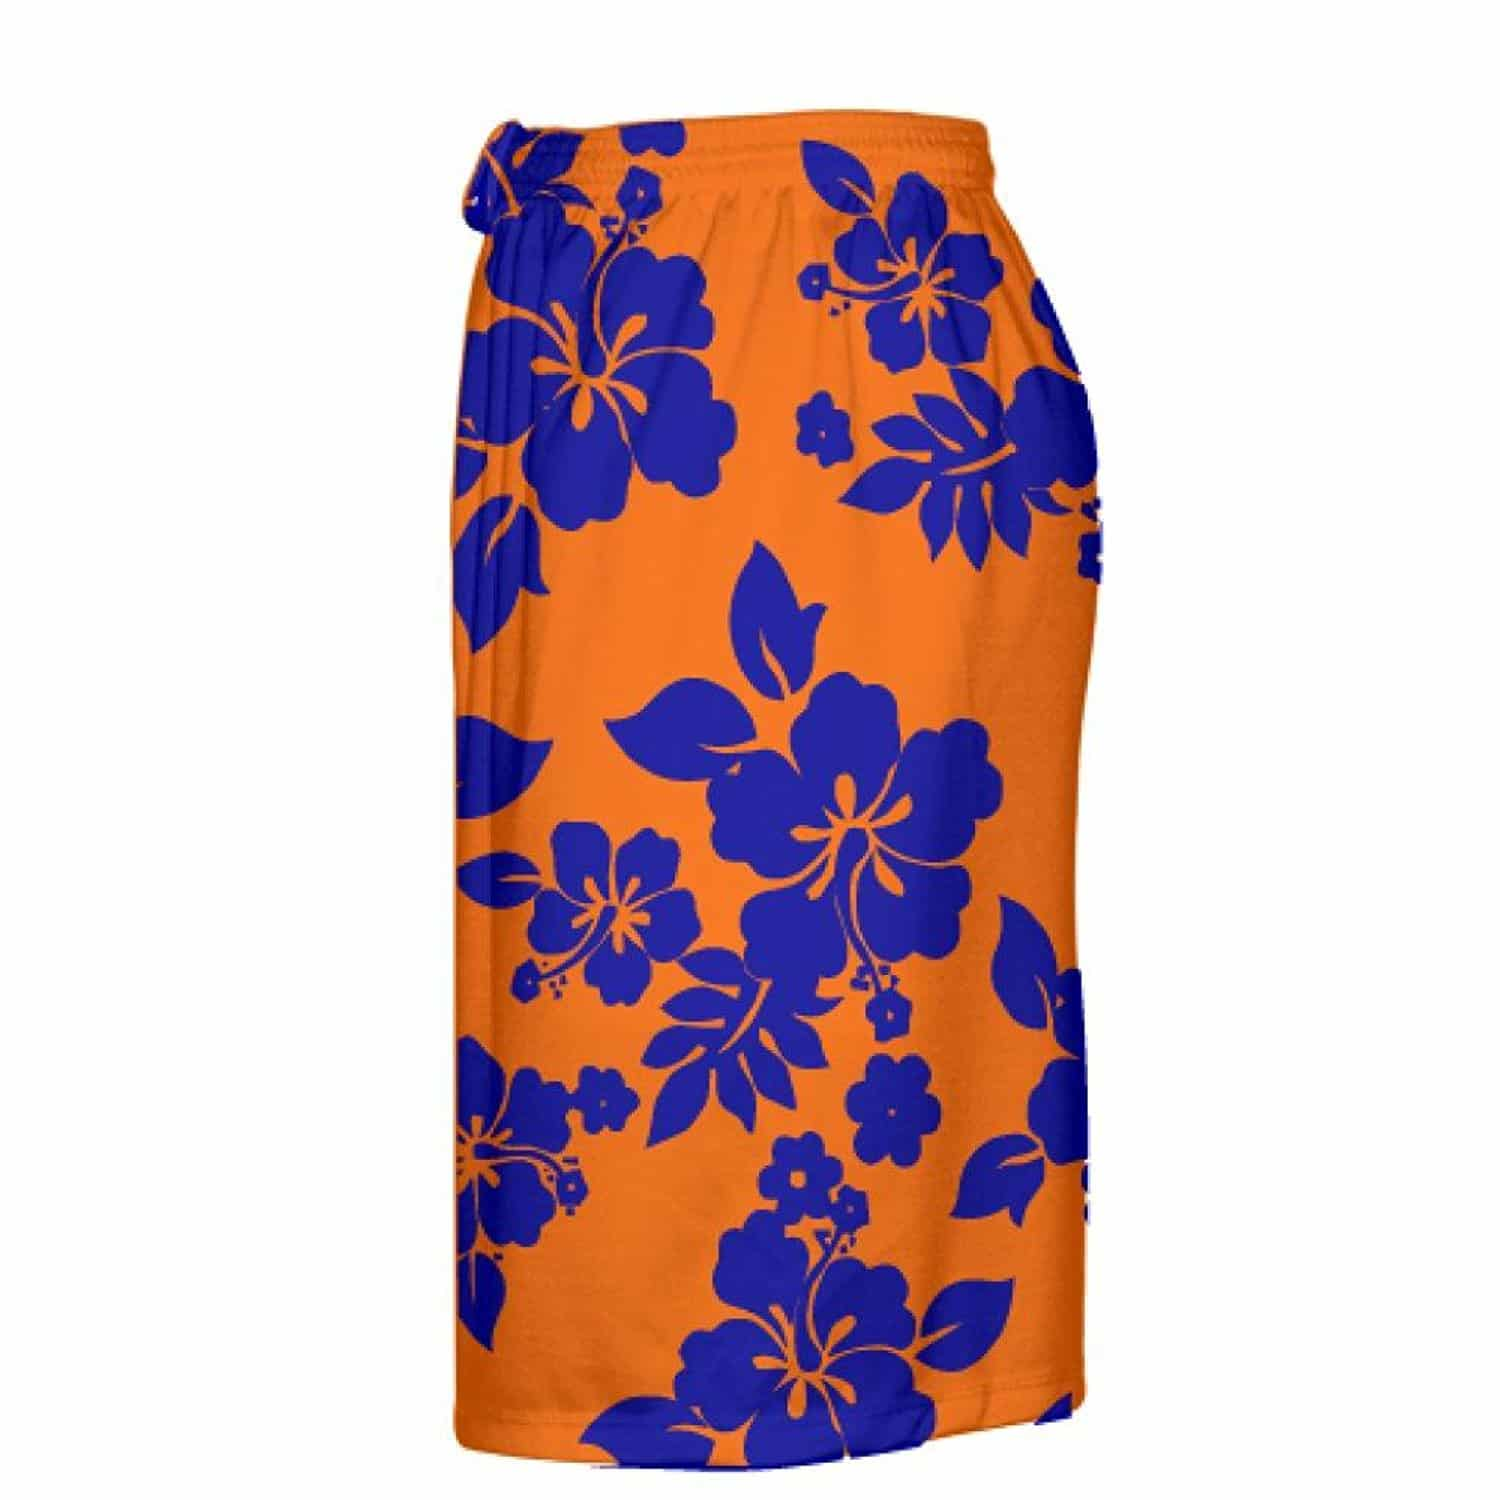 LightningWear-Blue-Orange-Hawaiian-Shorts-Accent-B0797BLZ82-3